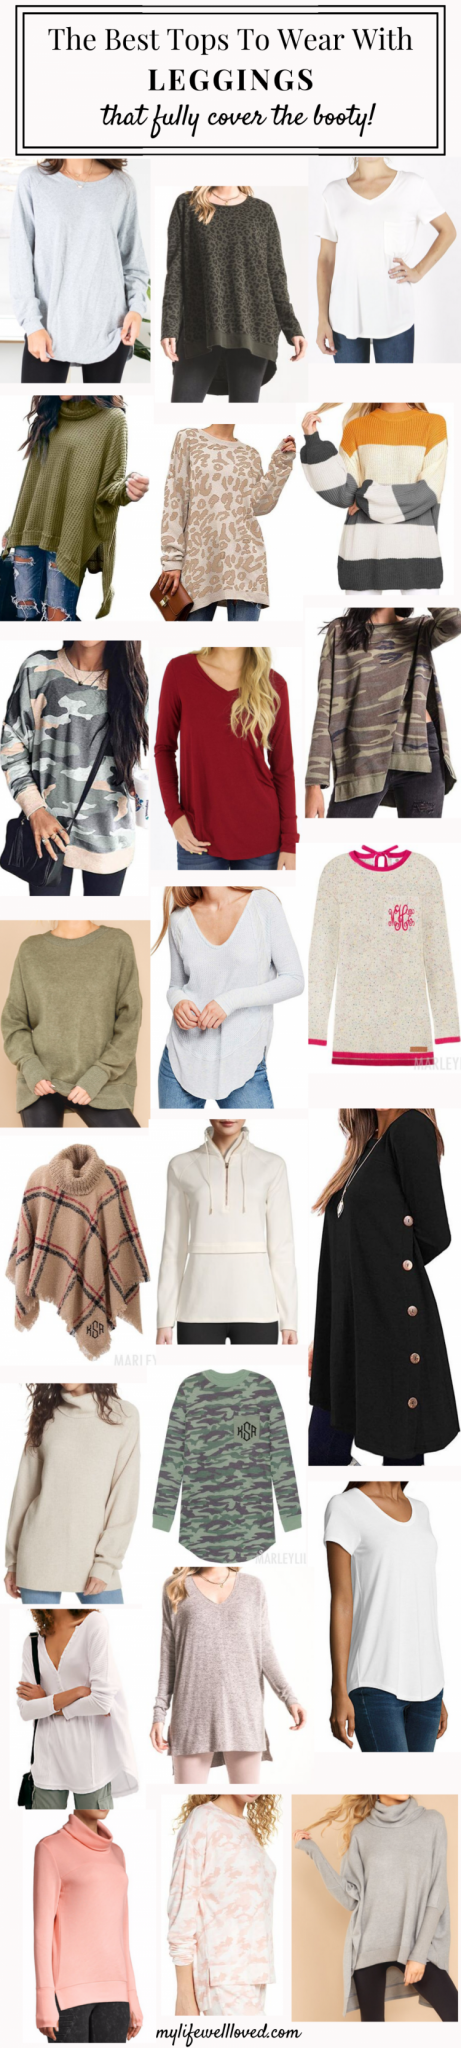 Top 22 Best Tops To Wear With Leggings This Fall By Life + Style Blogger, Heather Brown // My Life Well Loved